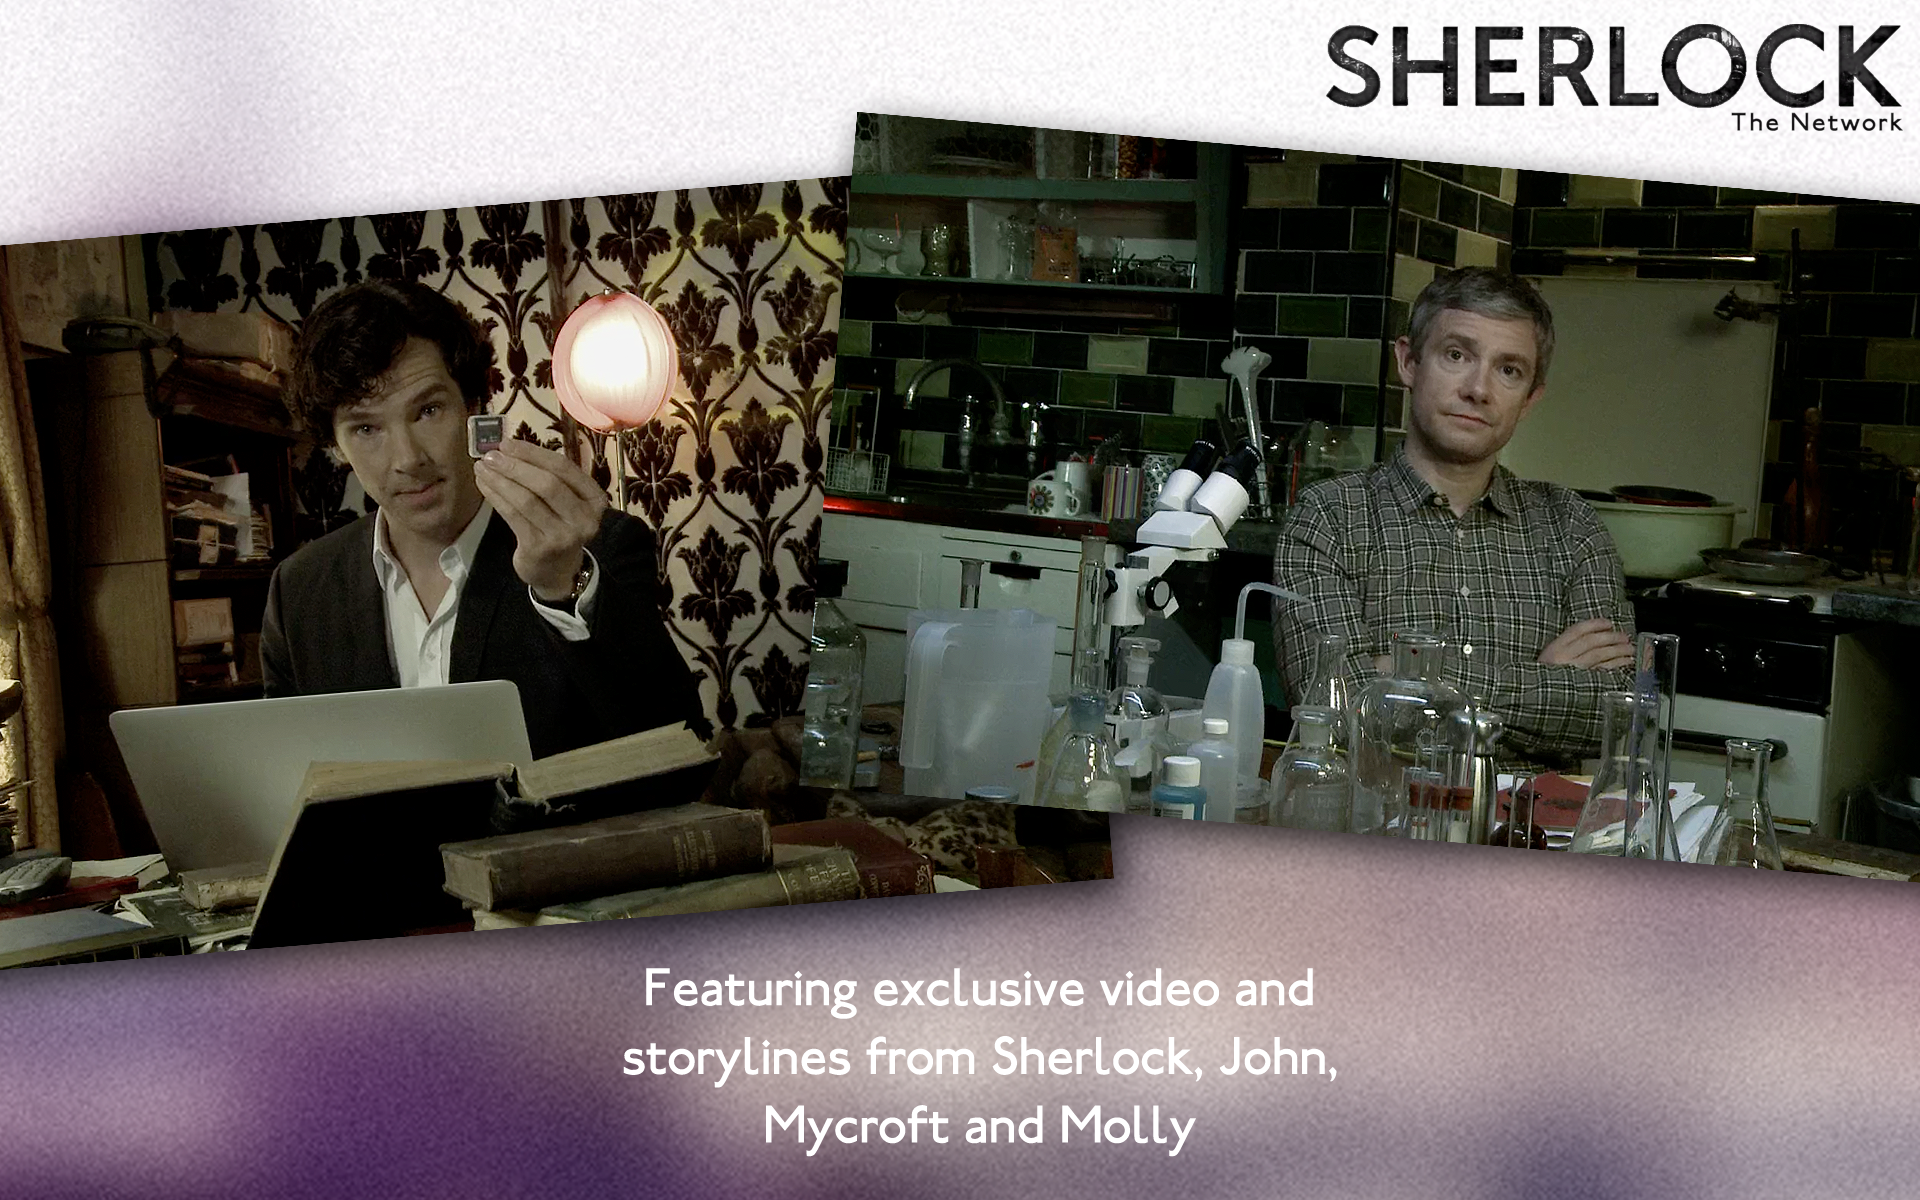 Sherlock: The Network - Official App of the Hit TV Detective Series ...